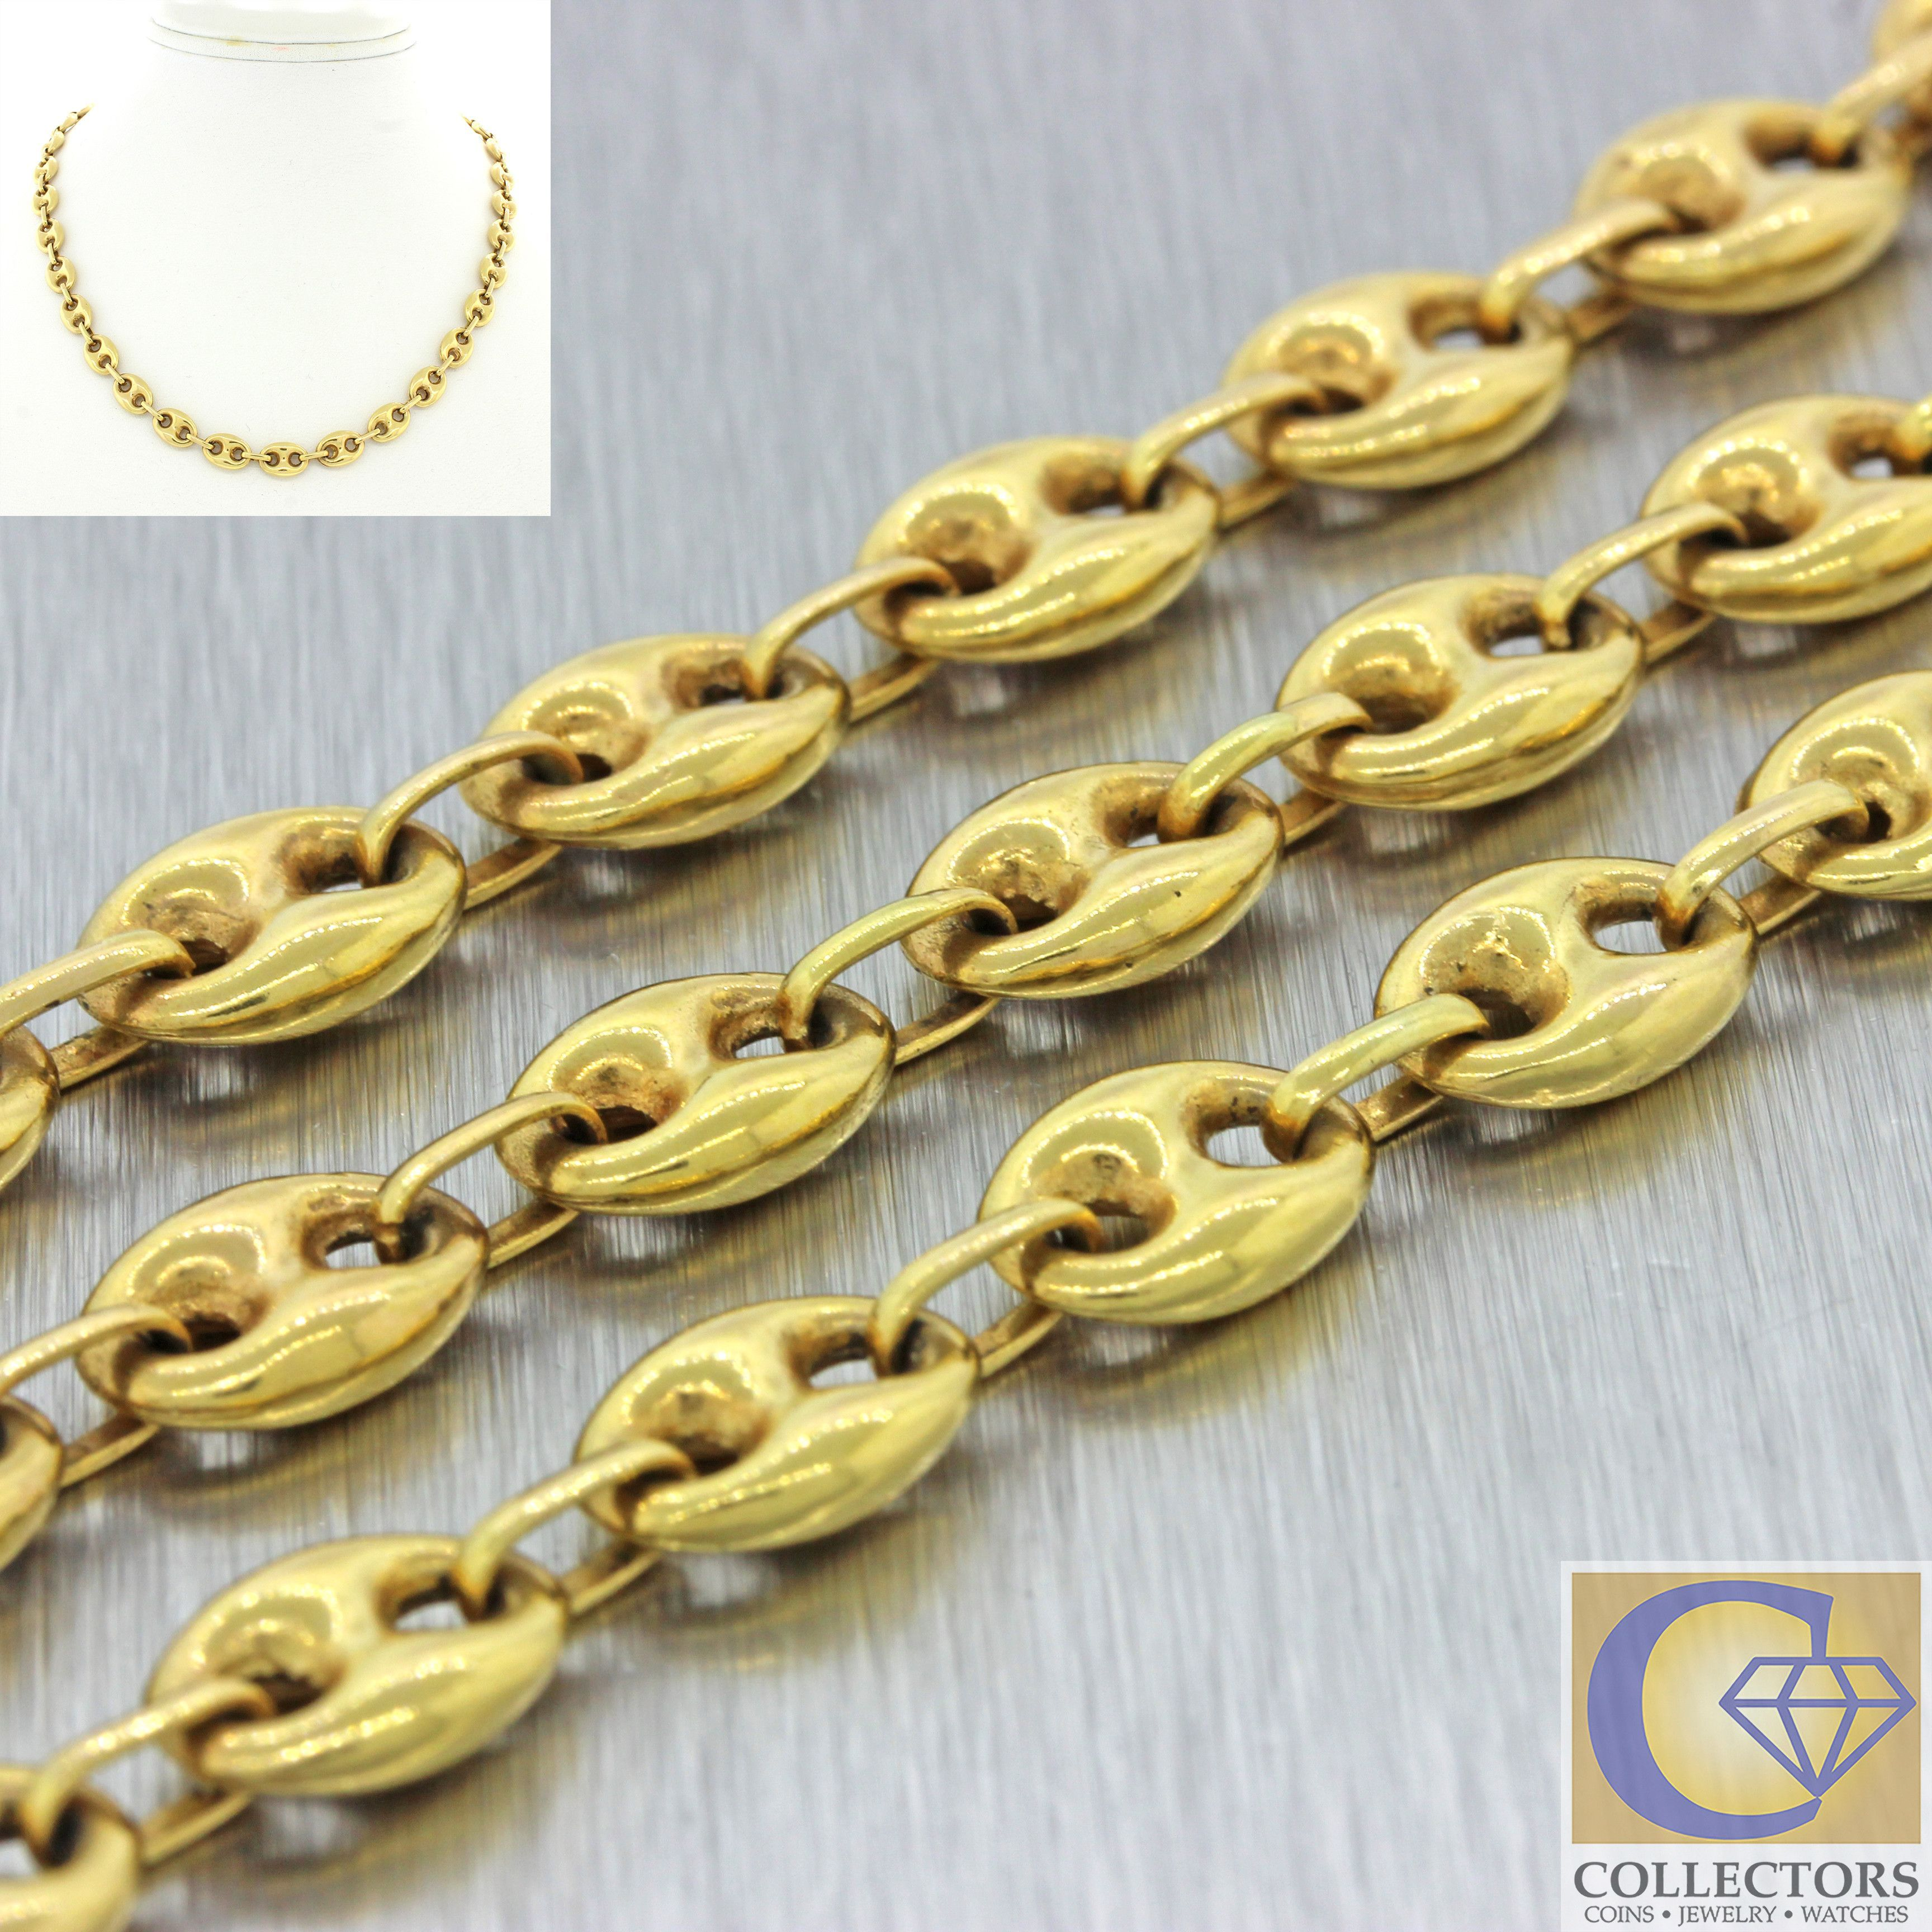 7ed3892f5 Men's Women's 14k Solid Yellow Gold 6mm Puffed Gucci Mariner Chain Necklace  18.6